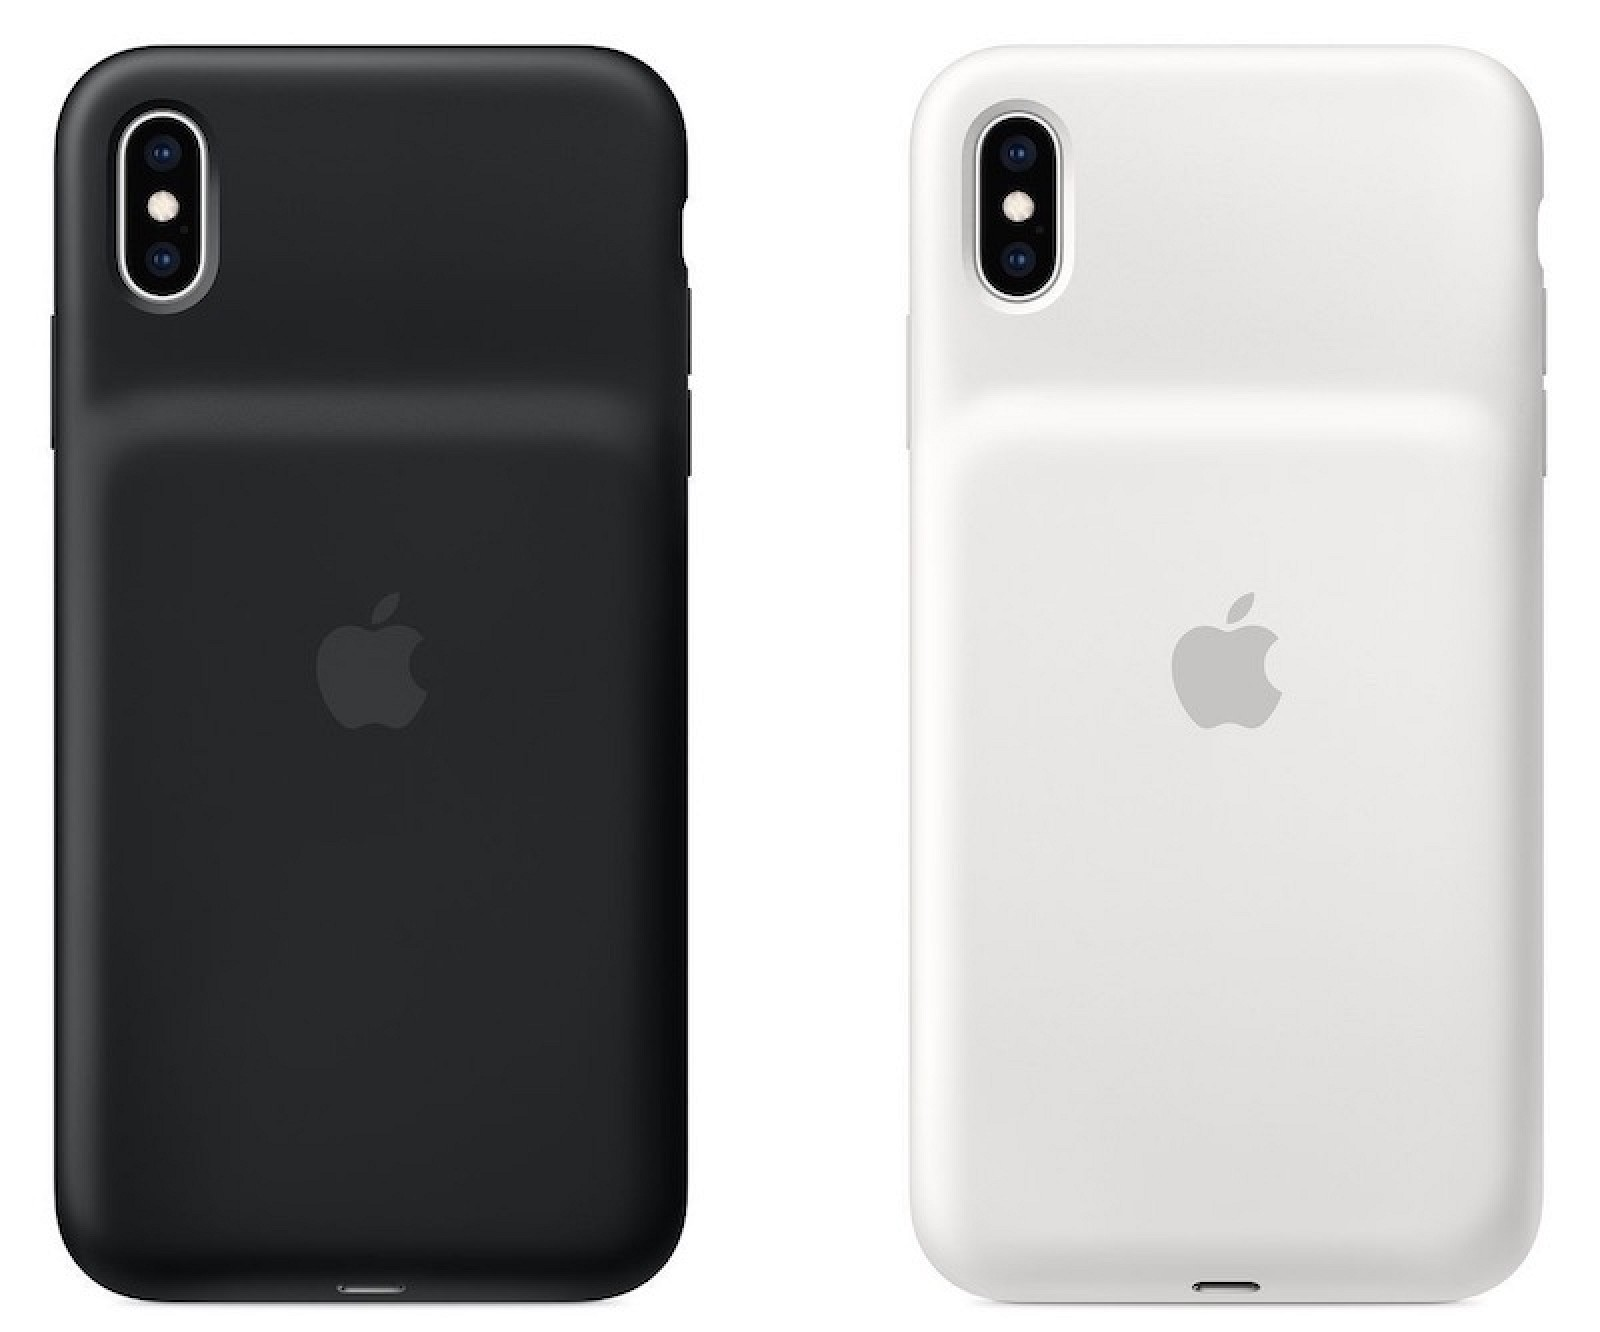 Smart Battery Case for iPhone XS Appears to Be Compatible With iPhone X 3bca522d66